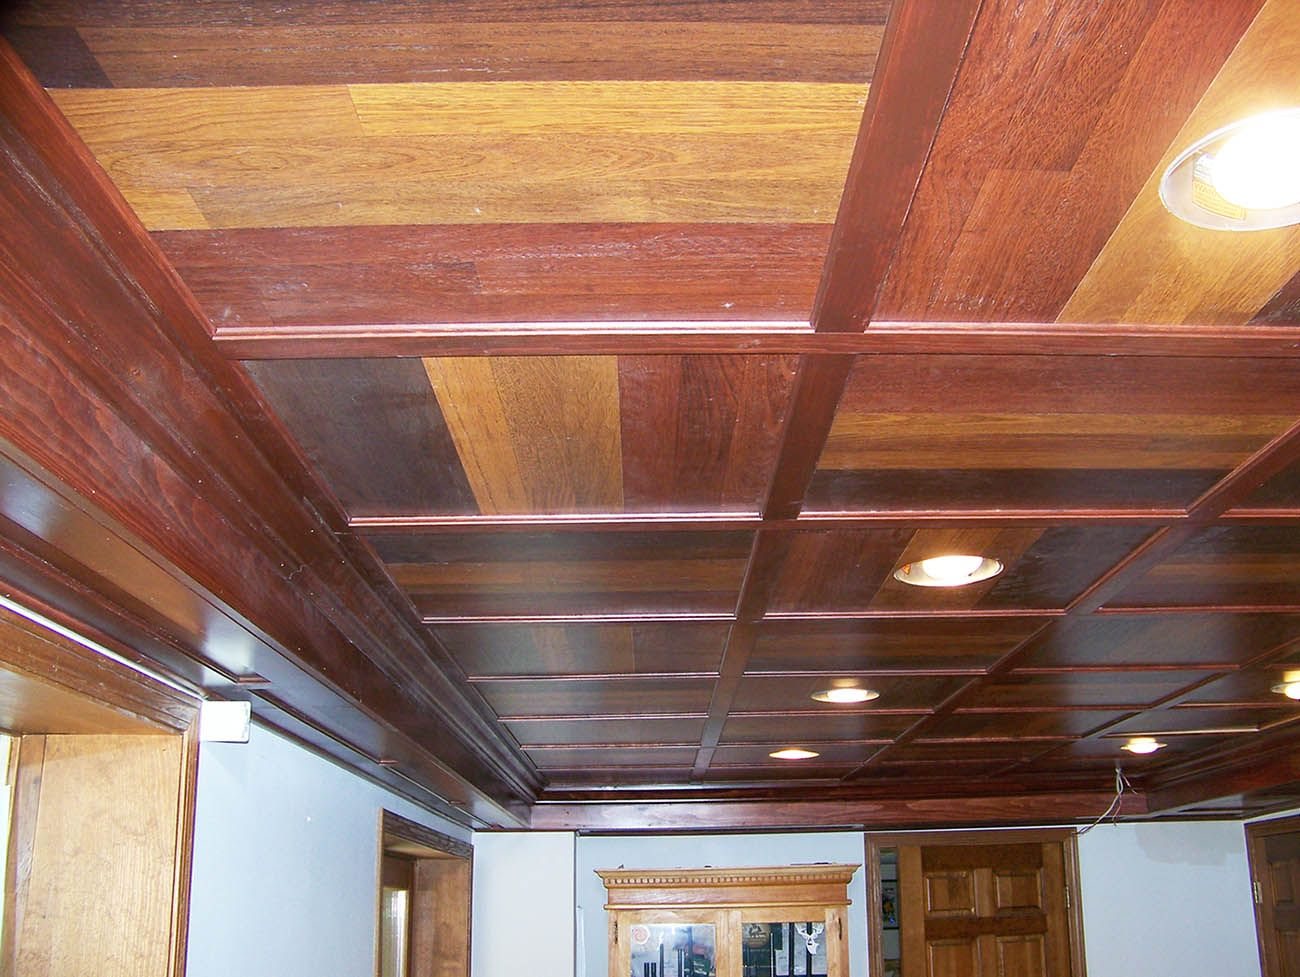 Wood ceiling tiles drop gallery tile flooring design ideas types of suspended ceiling tiles images tile flooring design ideas types of drop ceiling tiles image dailygadgetfo Choice Image